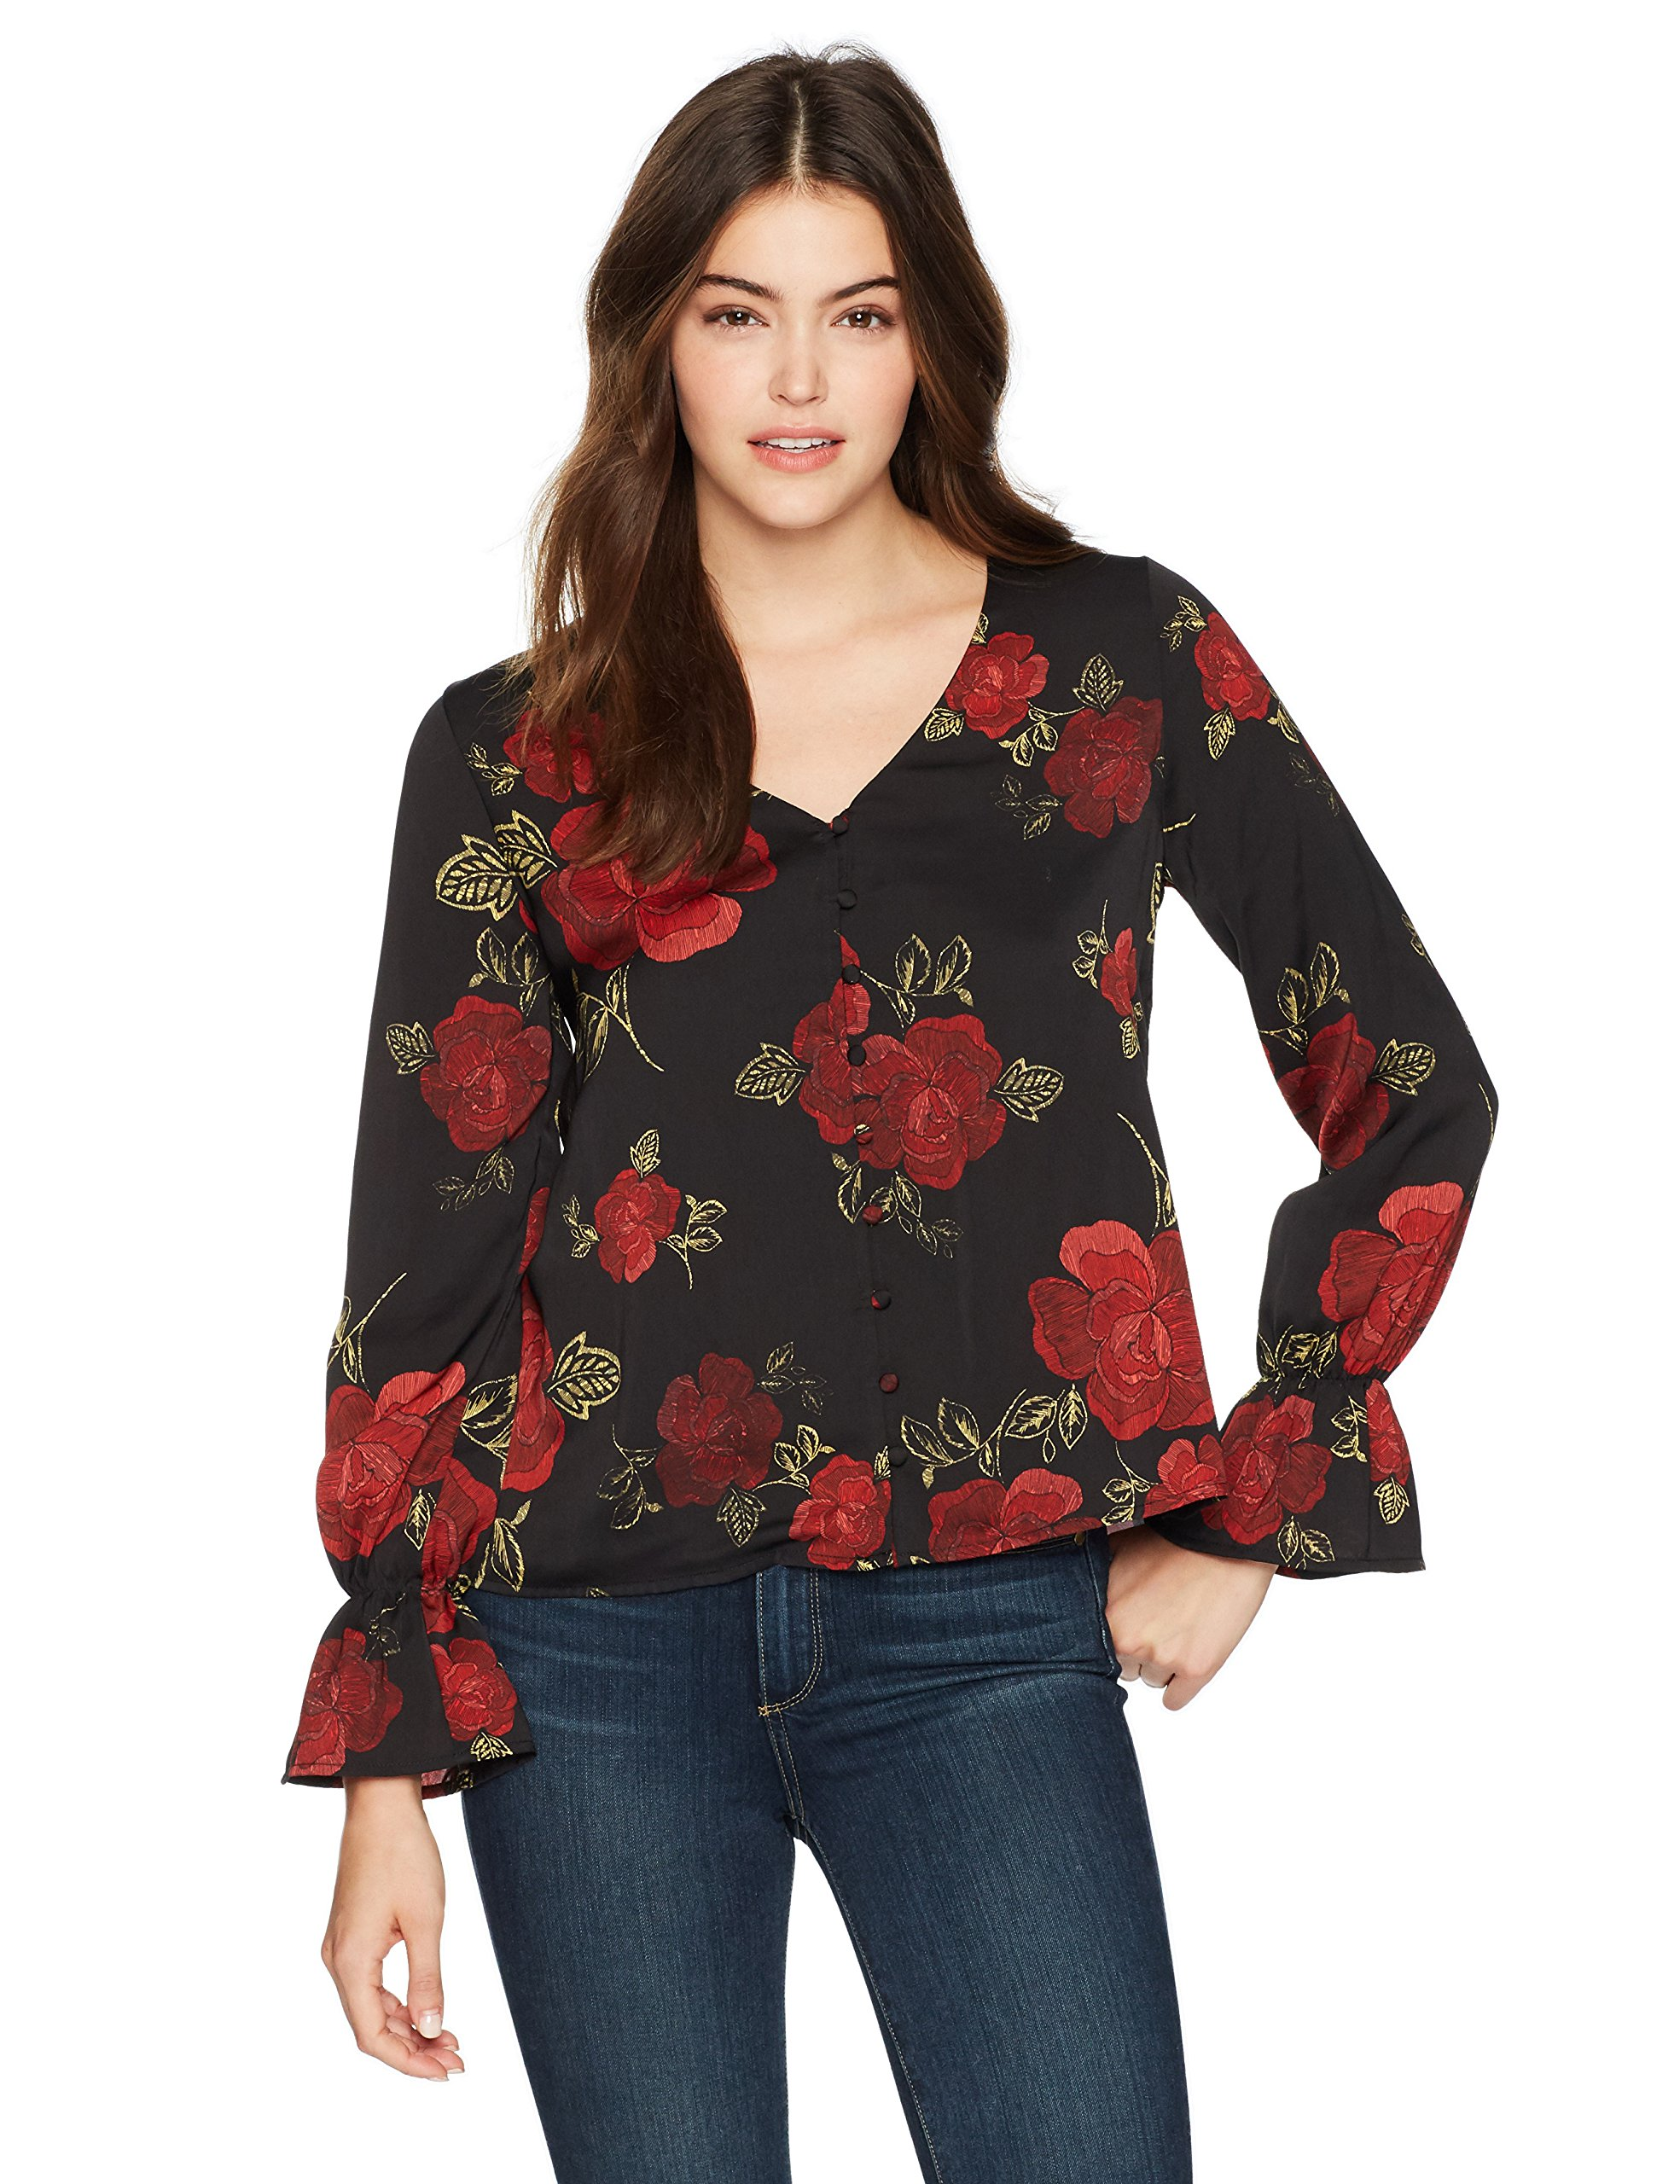 cupcakes and cashmere Women's Isadore Printed Top with Bell Sleeves, Black, X-Small